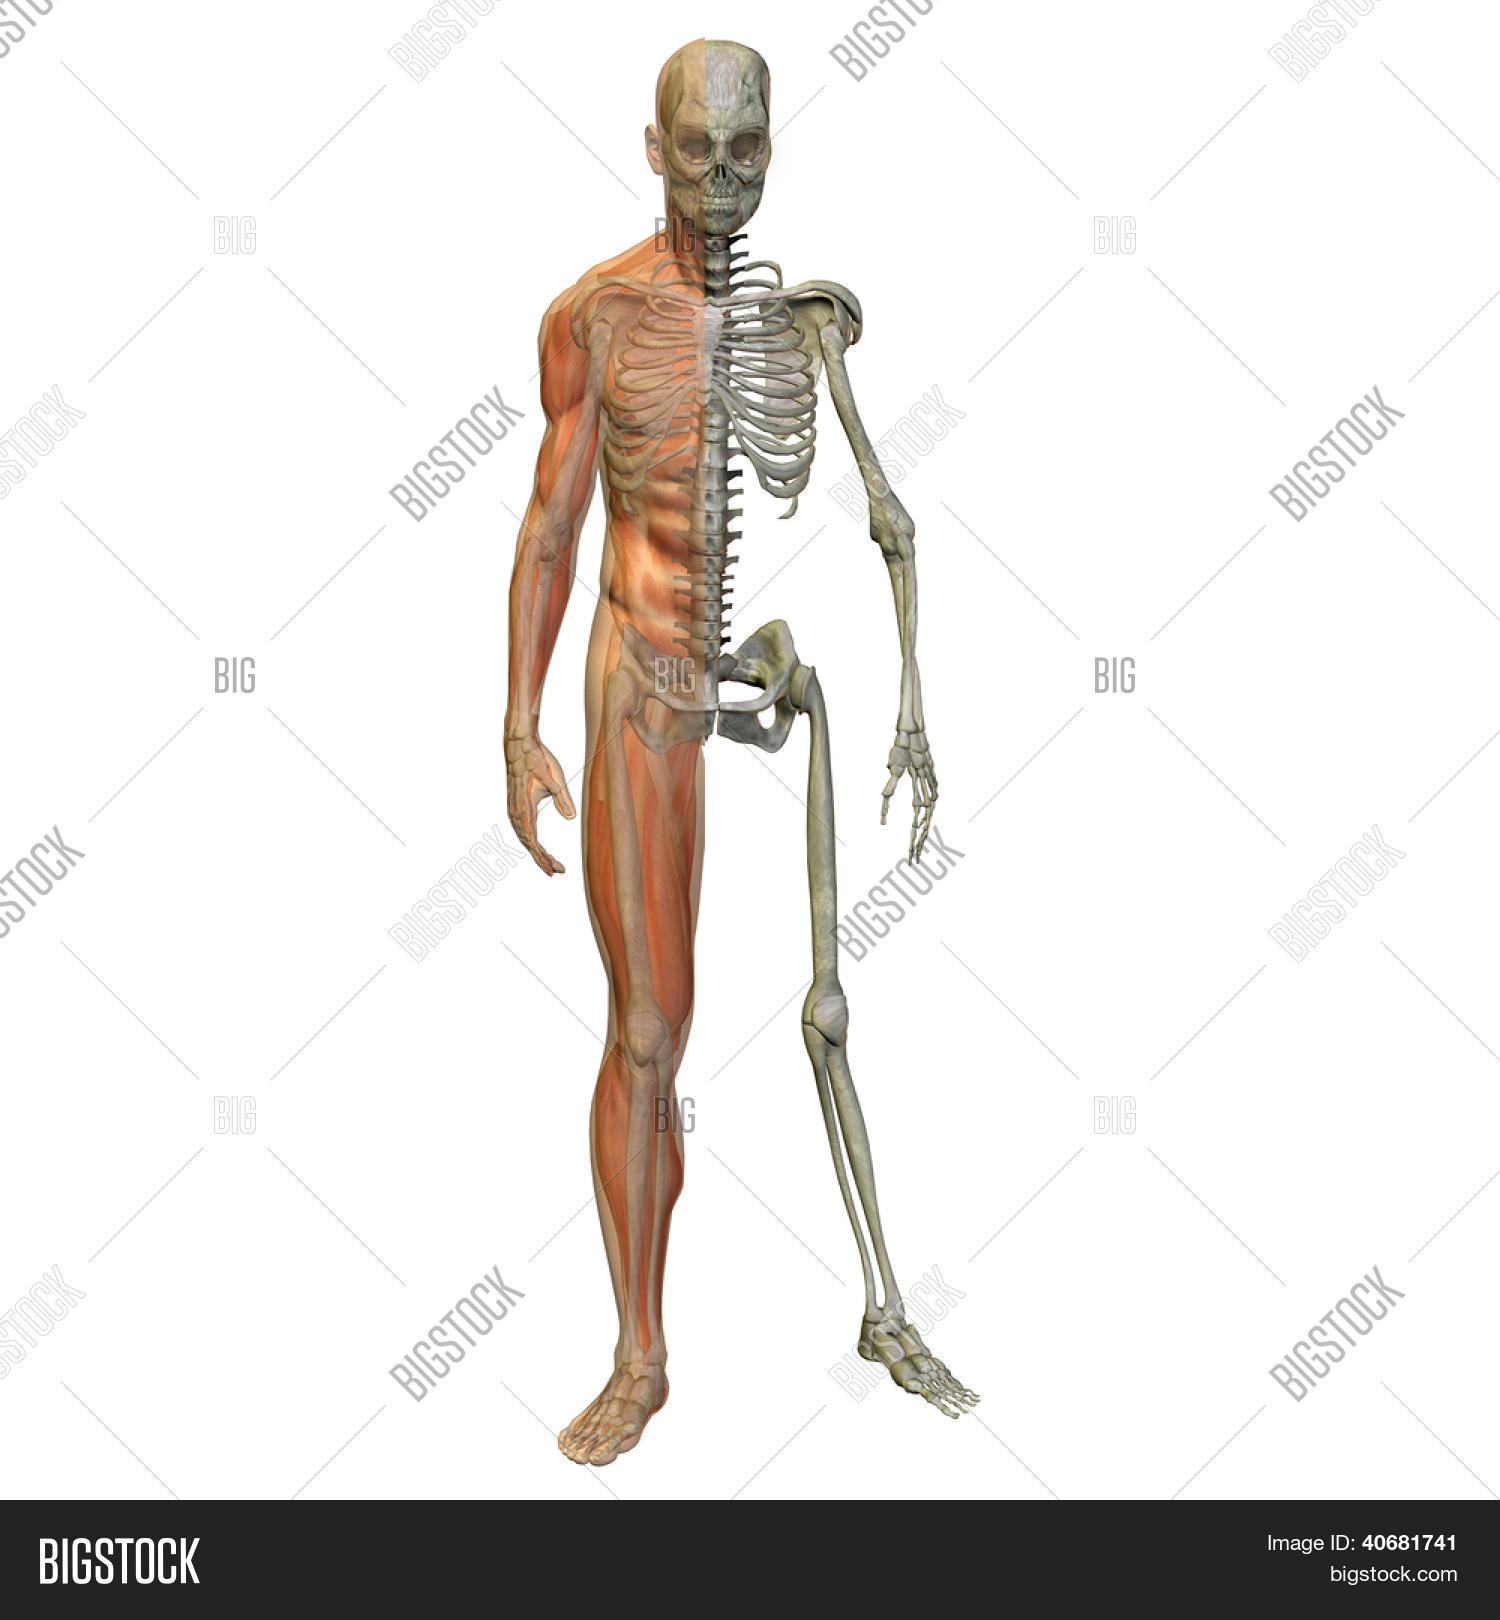 3d Human Male Anatomy Image Photo Free Trial Bigstock